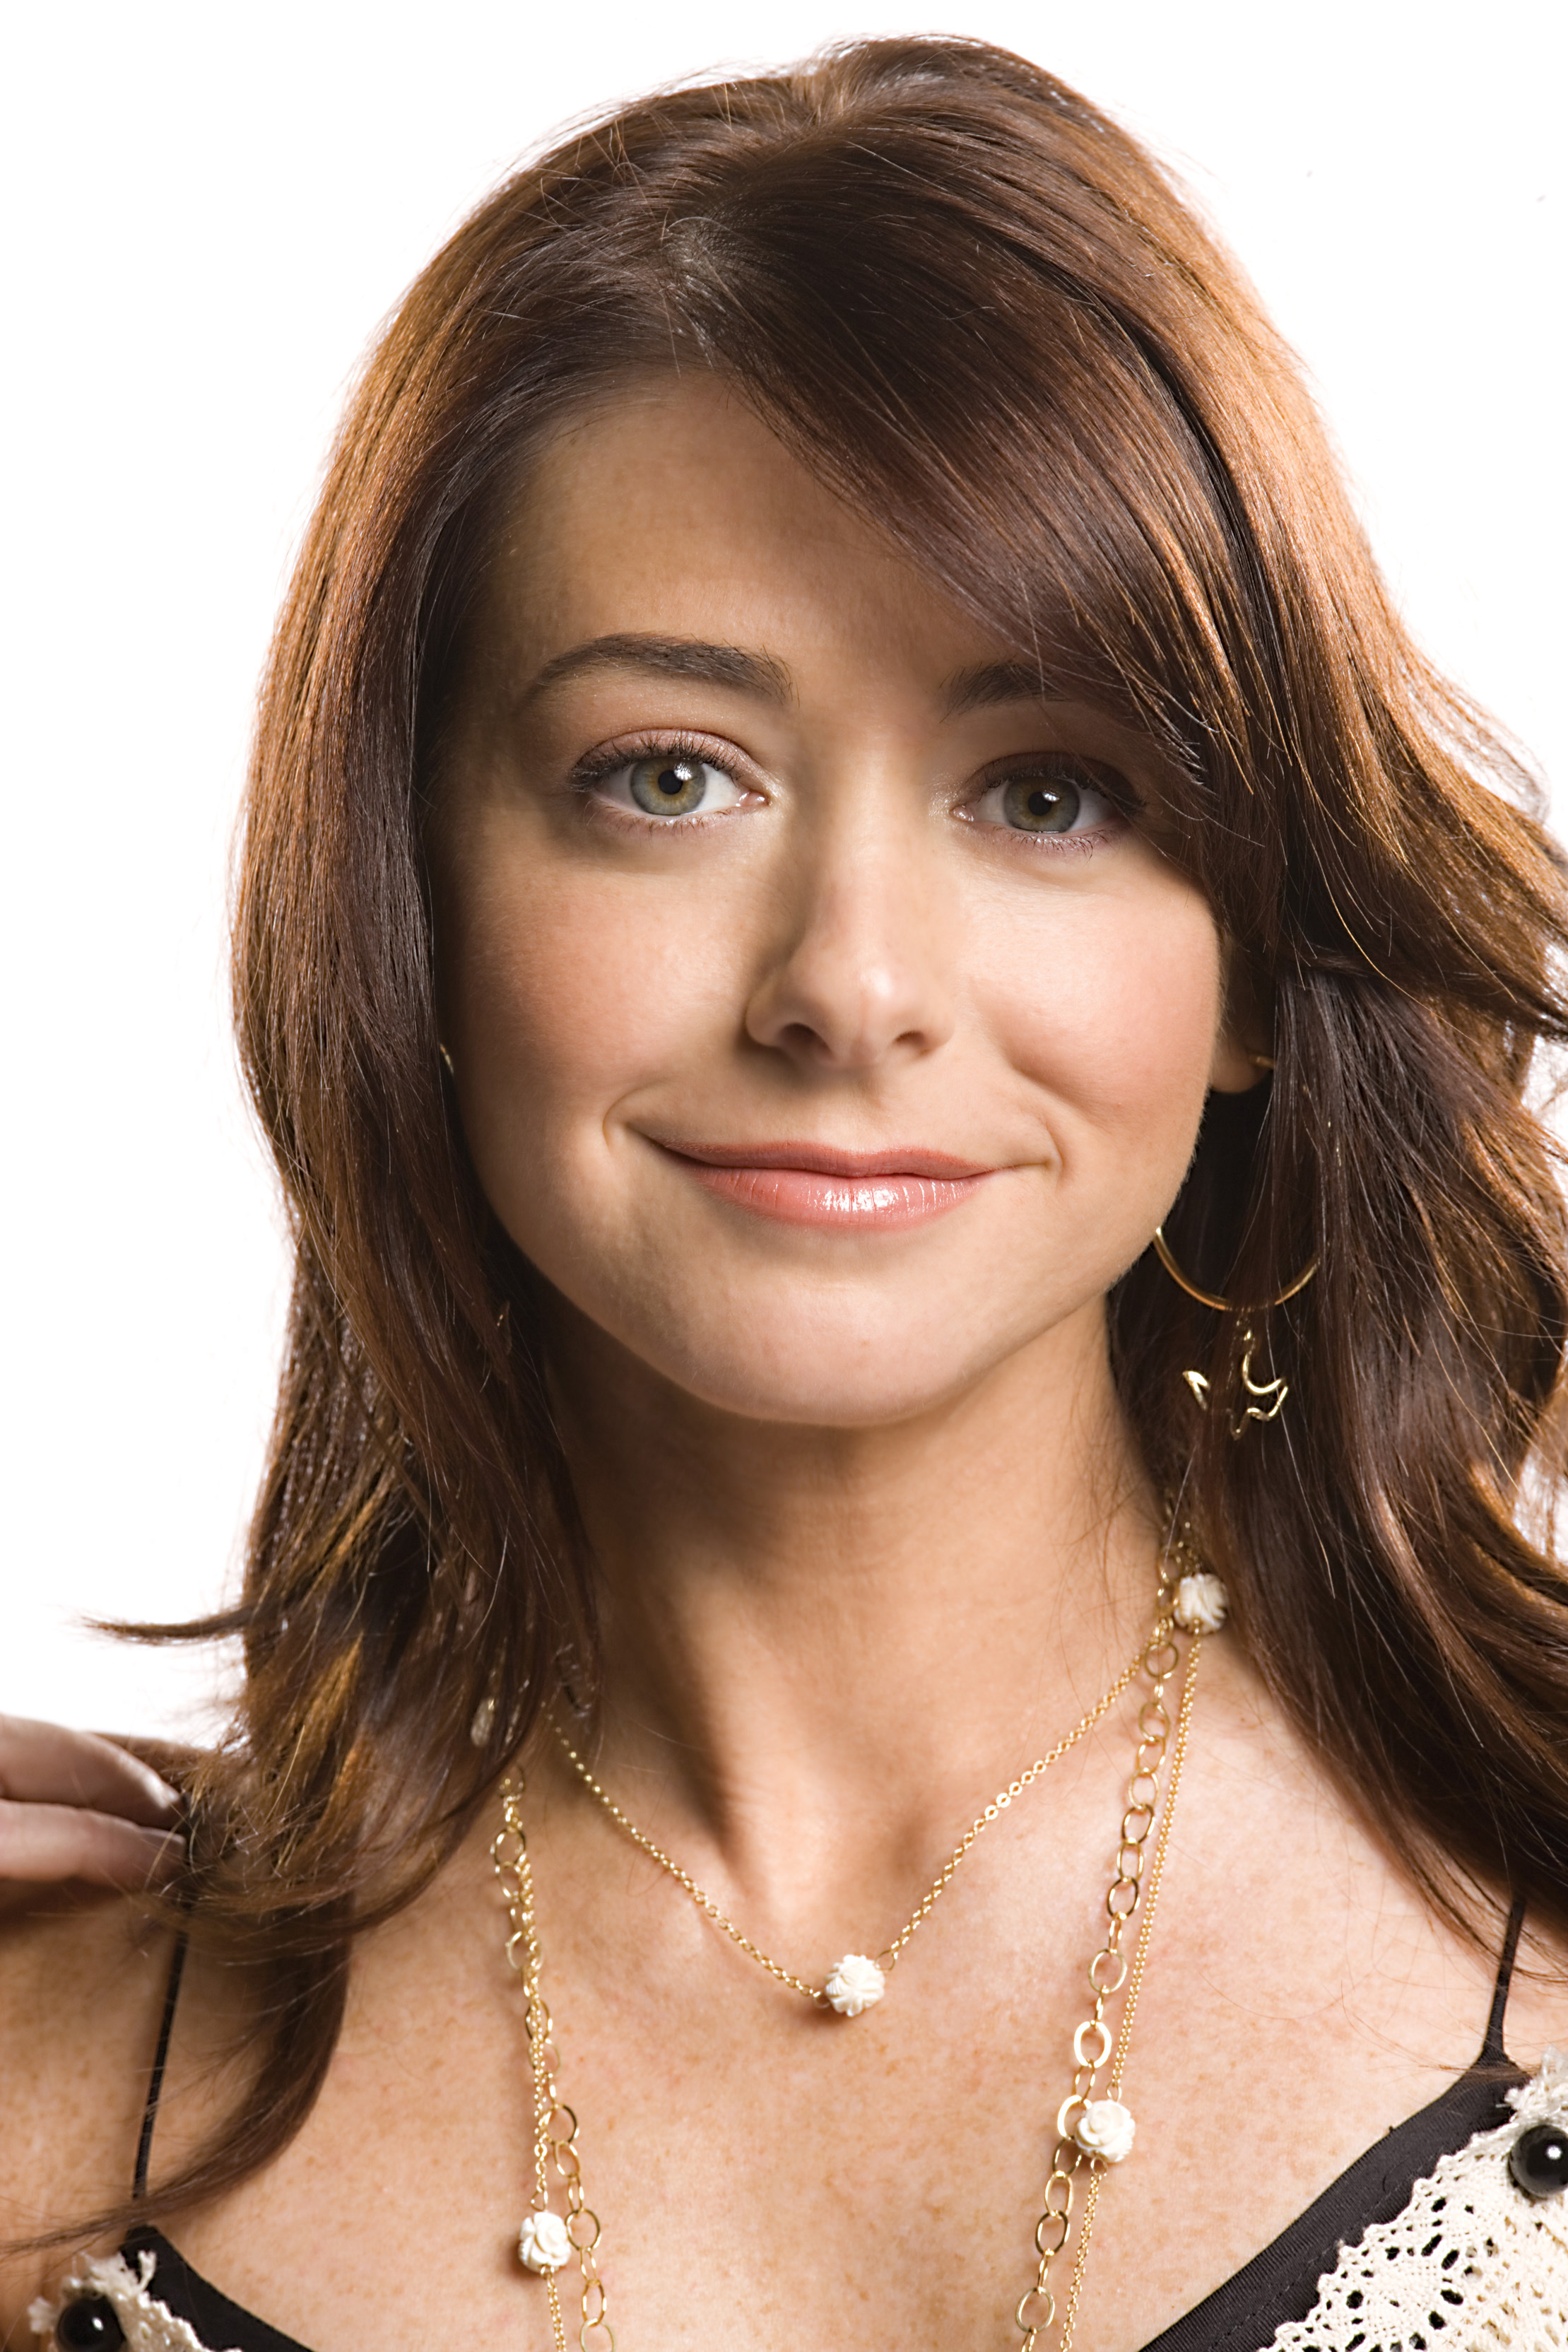 How I Met Your Mother, Alyson Hannigan as Lily Aldrin | DVDbash